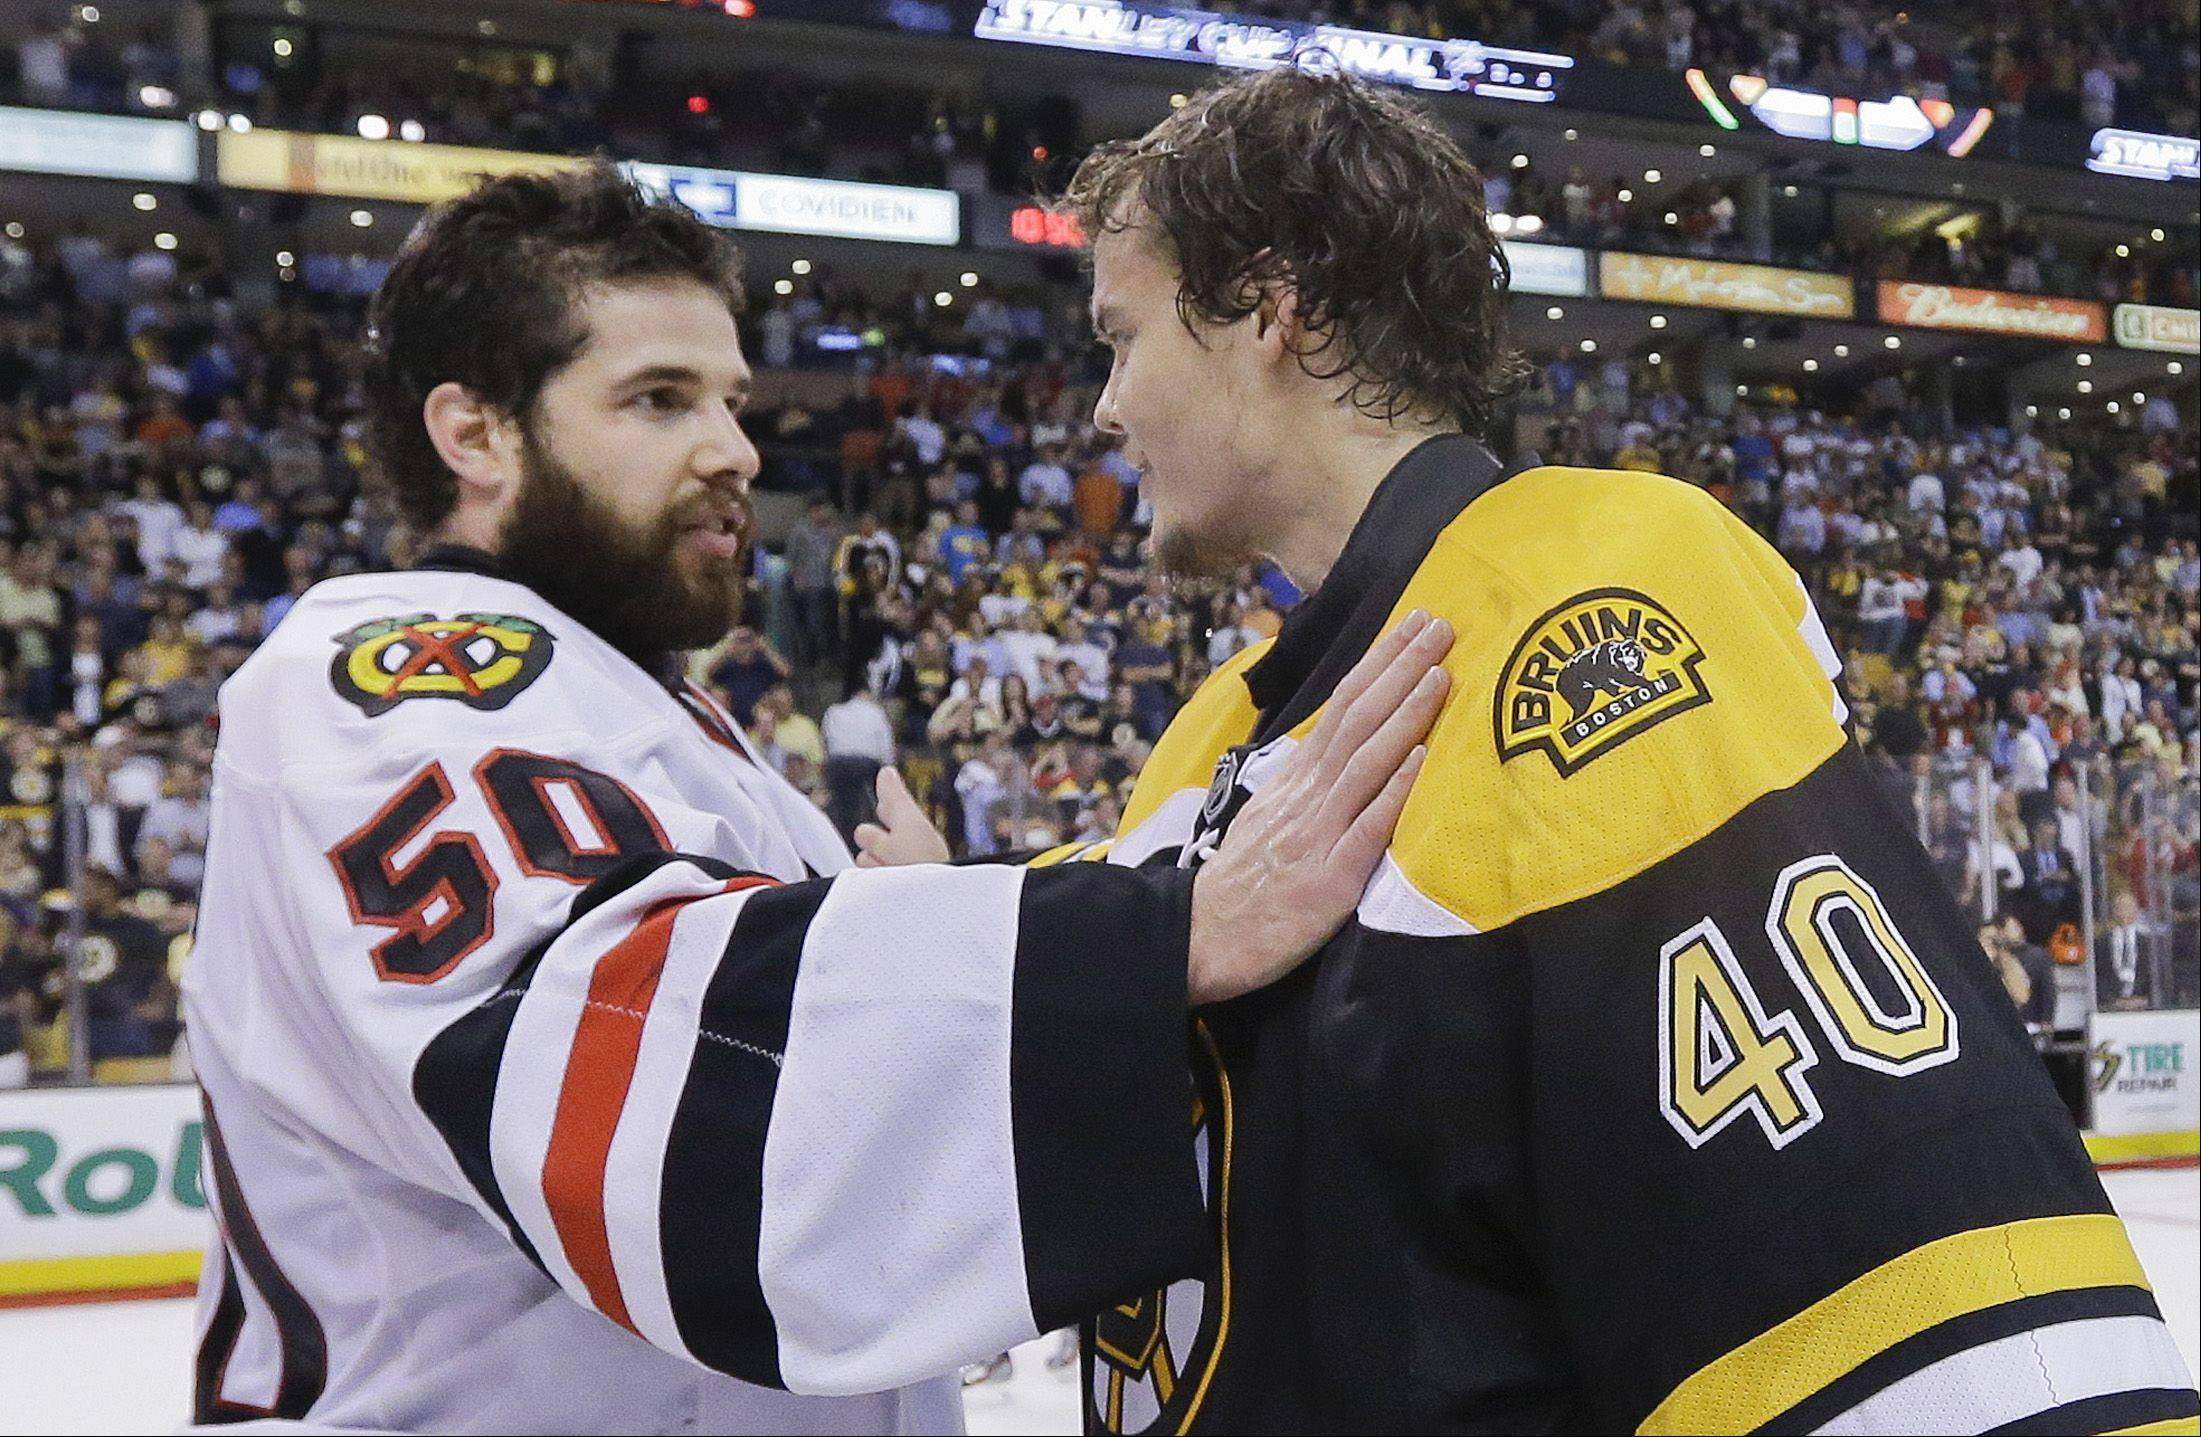 Chicago Blackhawks goalie Corey Crawford (50) is congratulated by Boston Bruins goalie Tuukka Rask (40), of Finland, after the Blackhawks beat the Boston Bruins in the Stanley Cup Finals Monday, June 24, 2013, in Boston.